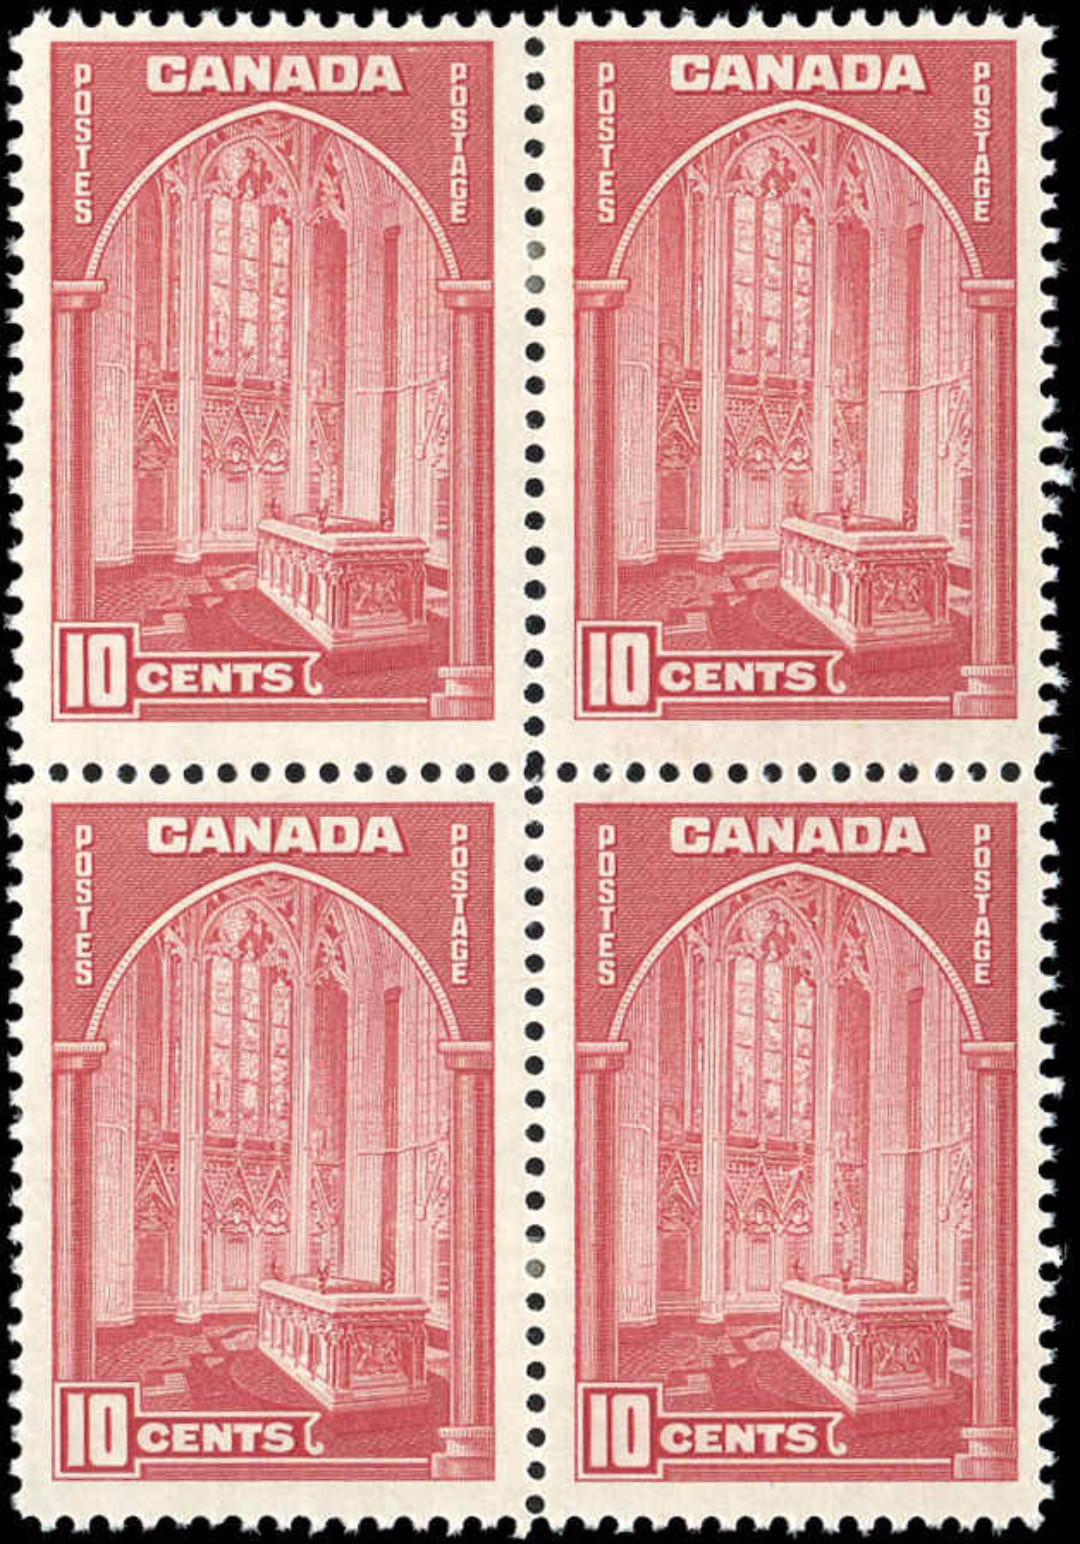 Canada #241, 1938 Pictorial Issue, F+, MH